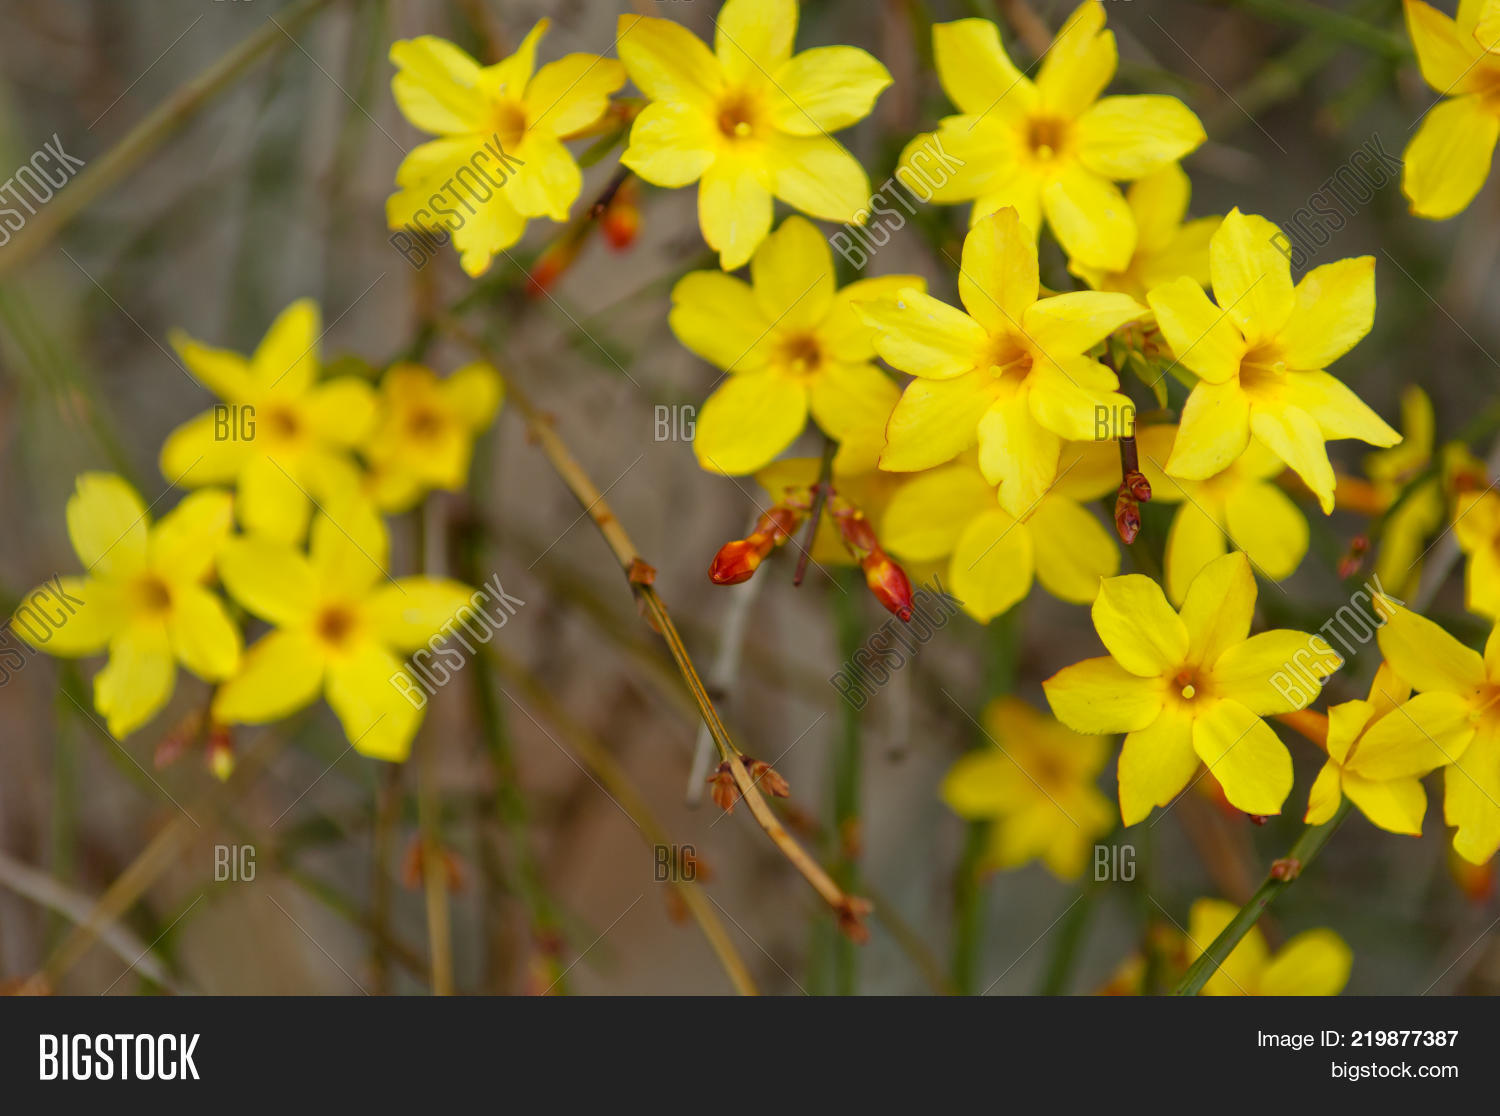 Winter jasmine image photo free trial bigstock winter jasmine or jasminum nudiflorum deciduous shrub blooming with yellow flowers in early spring izmirmasajfo